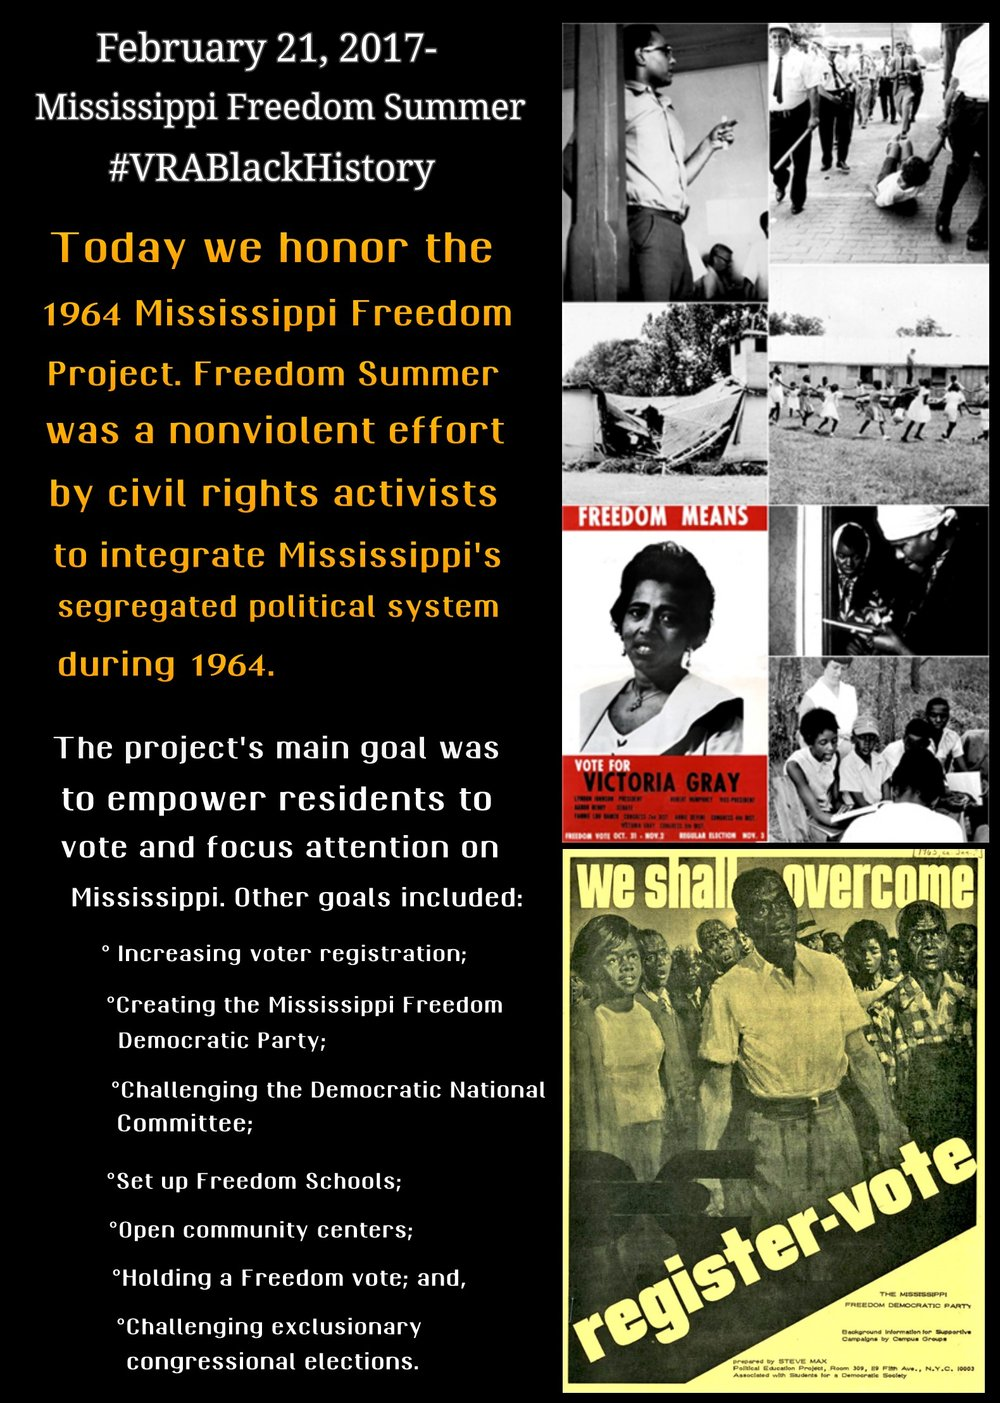 Mississippi Freedom Summer Picture.jpg